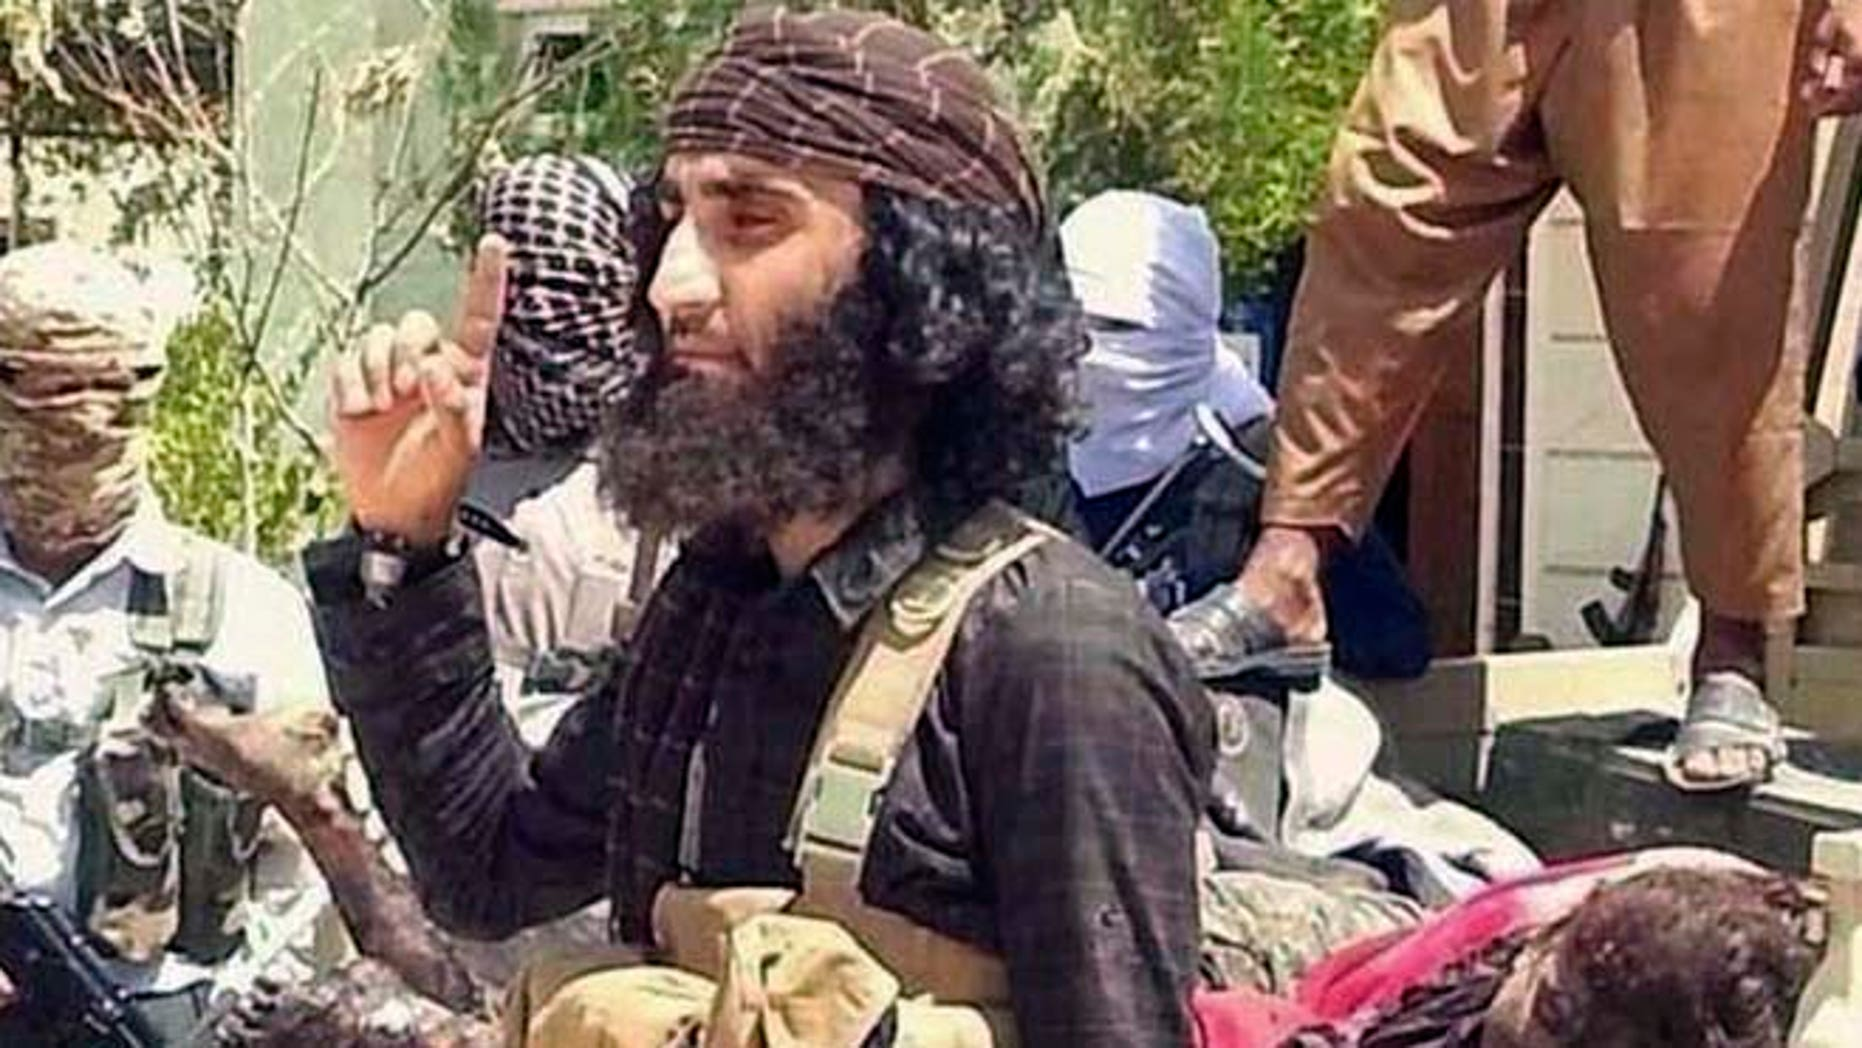 This undated image posted on a militant website shows Abu Khattab al-Kurdi, or Abu Khattab the Kurd, one of the Islamic State group's top military commanders in the offensive on the Syrian city of Kobani. (AP/Jihadis website)